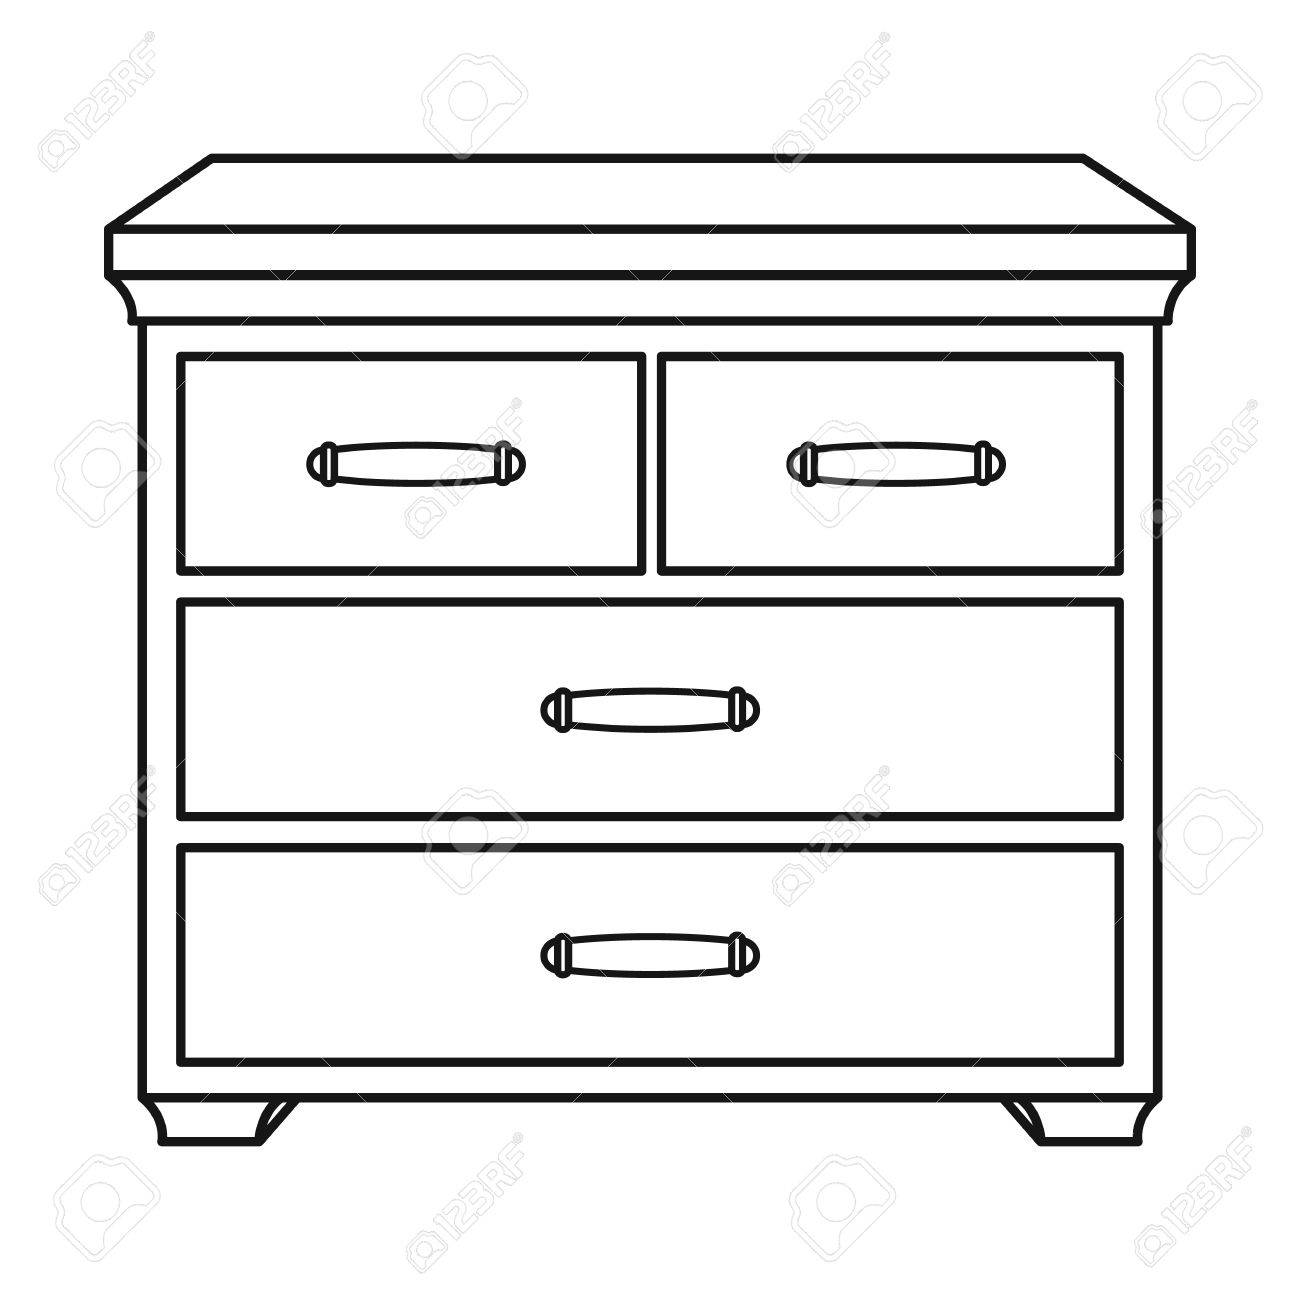 Wooden cabinet with drawers icon in outline style isolated on...